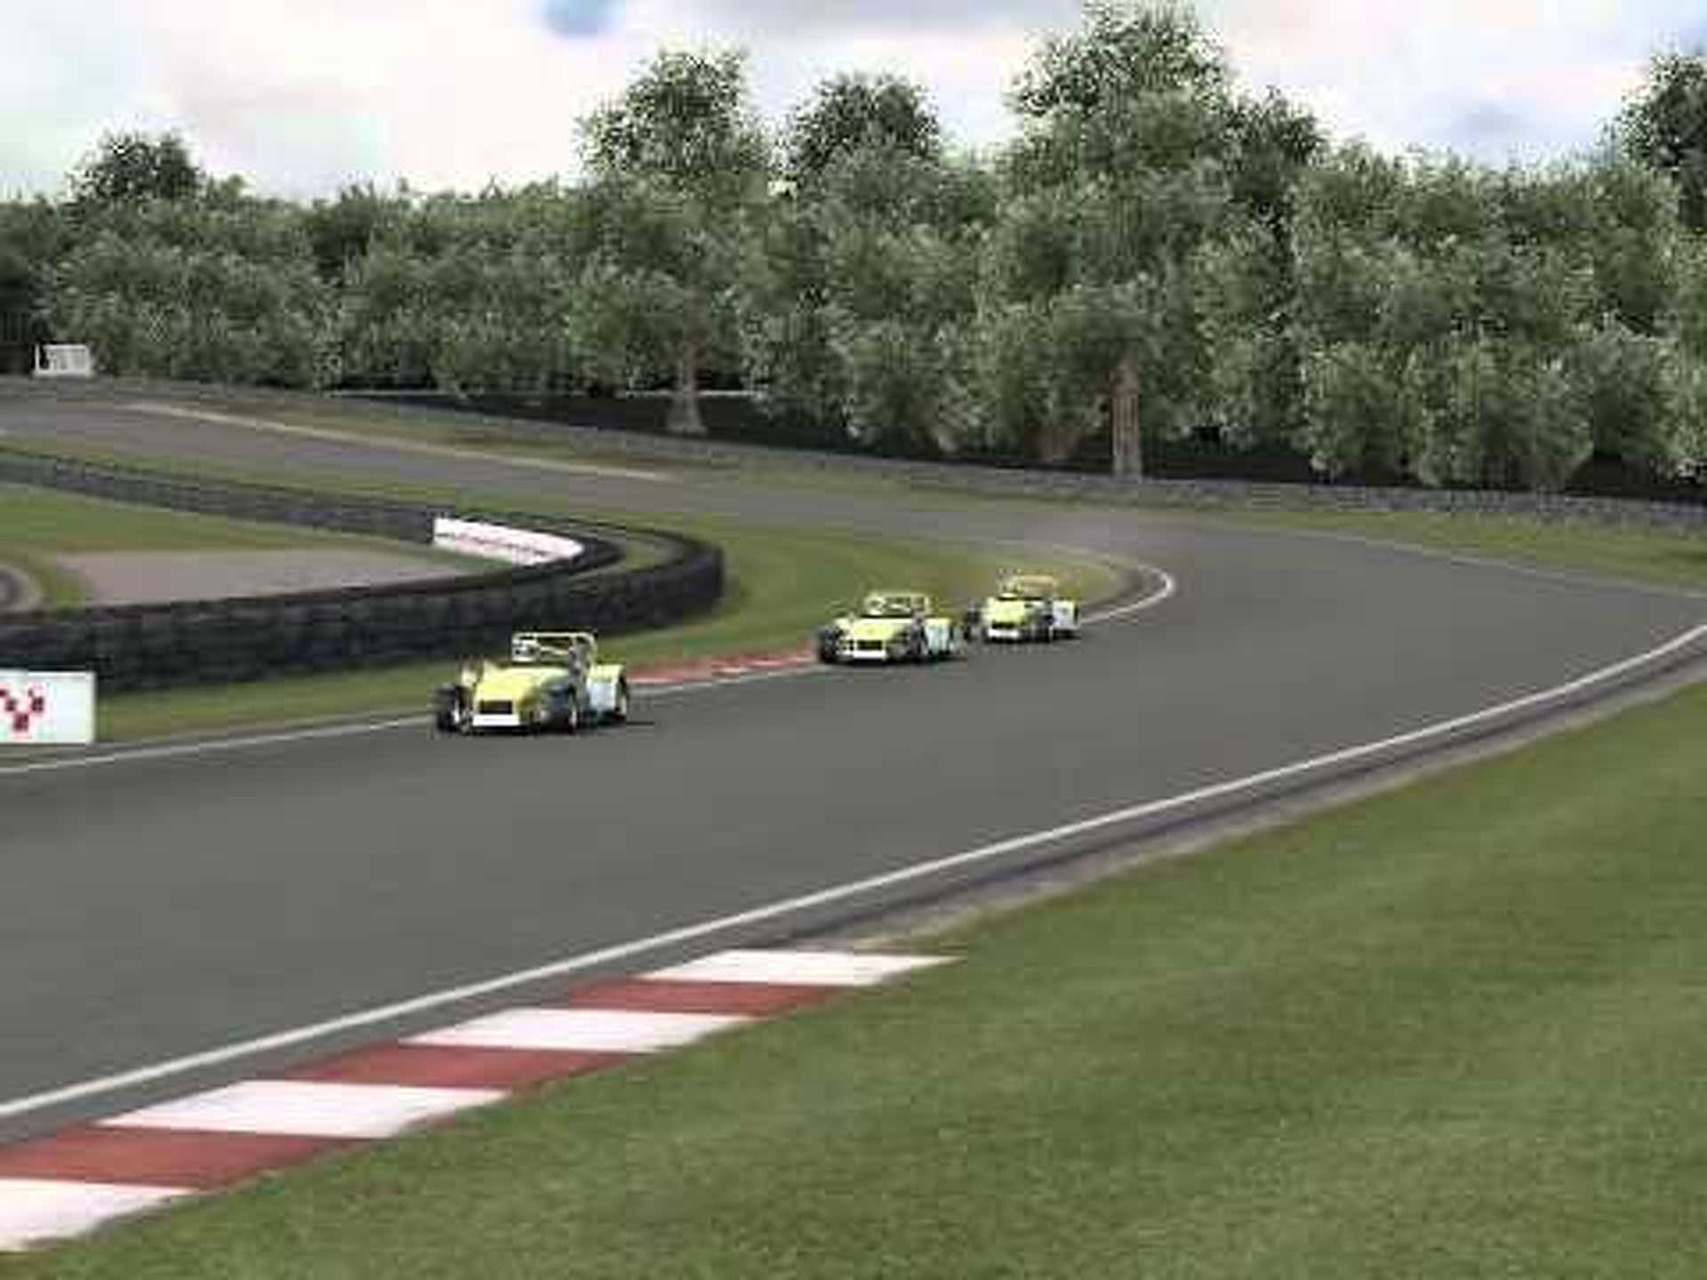 Four 49 second laps of Oulton International in an R300, merged together